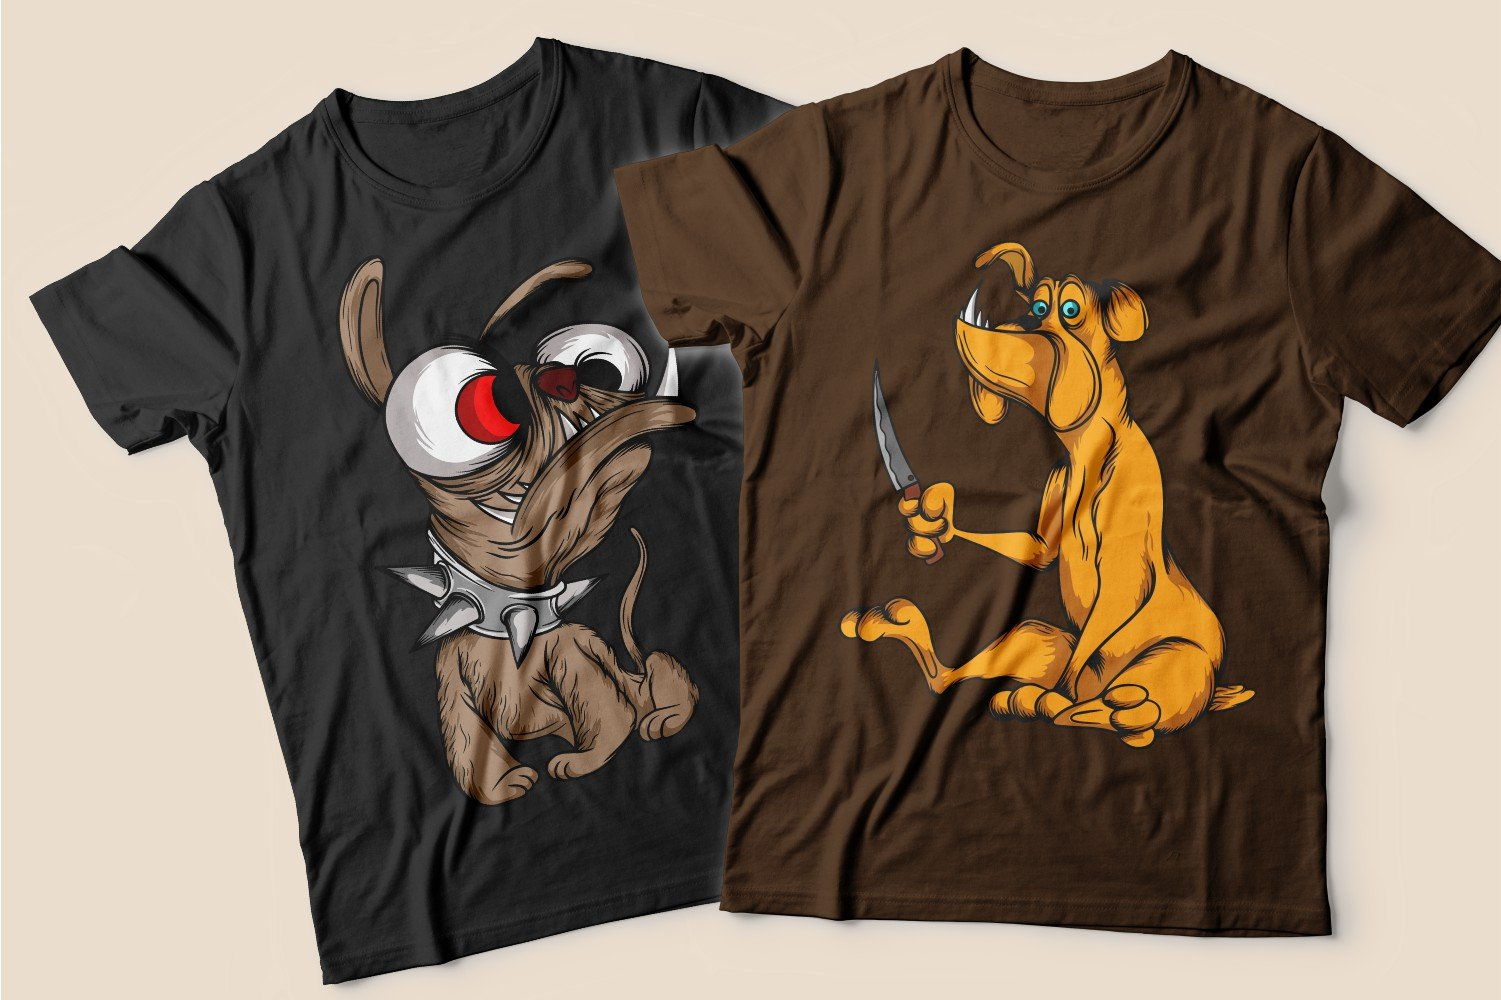 Two T-shirts: black with a skinny pug and a spiked collar and brown with a red dog with a knife.